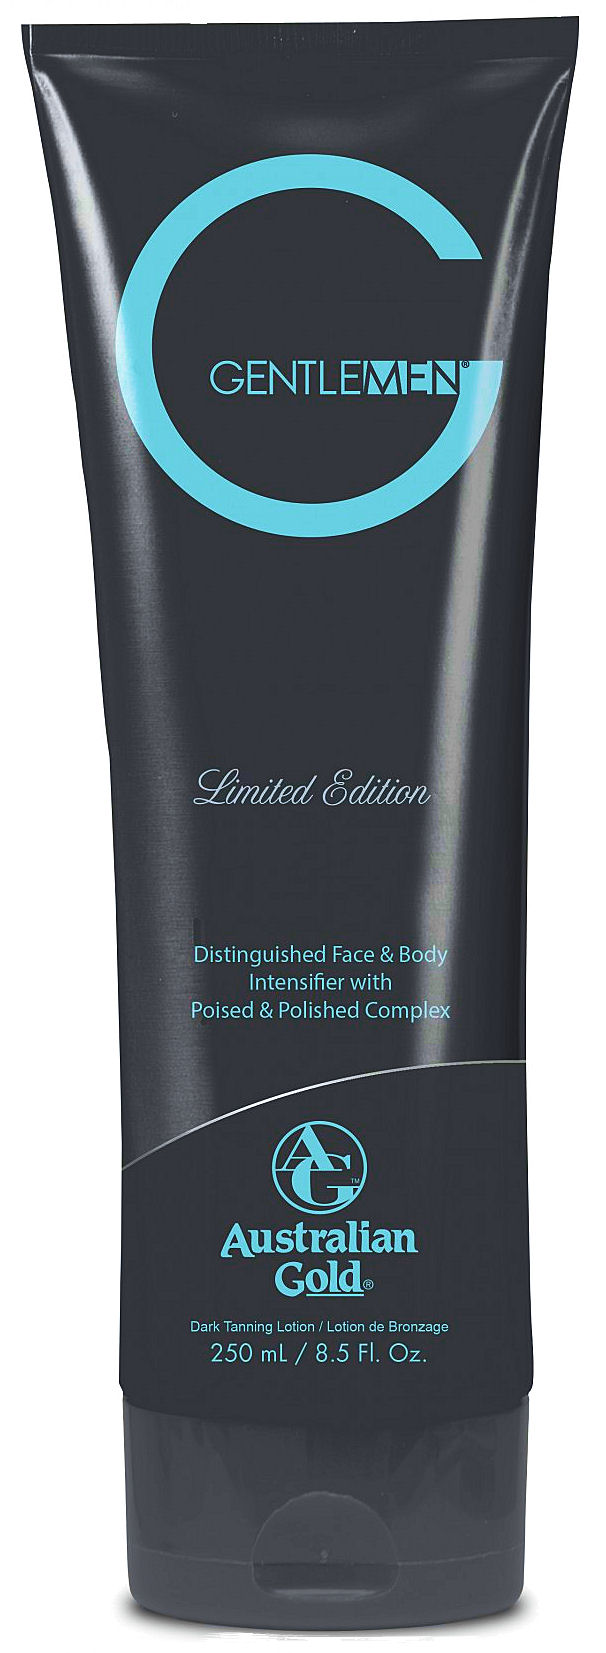 G Gentlemen® Limited Edition Dark Intensifier